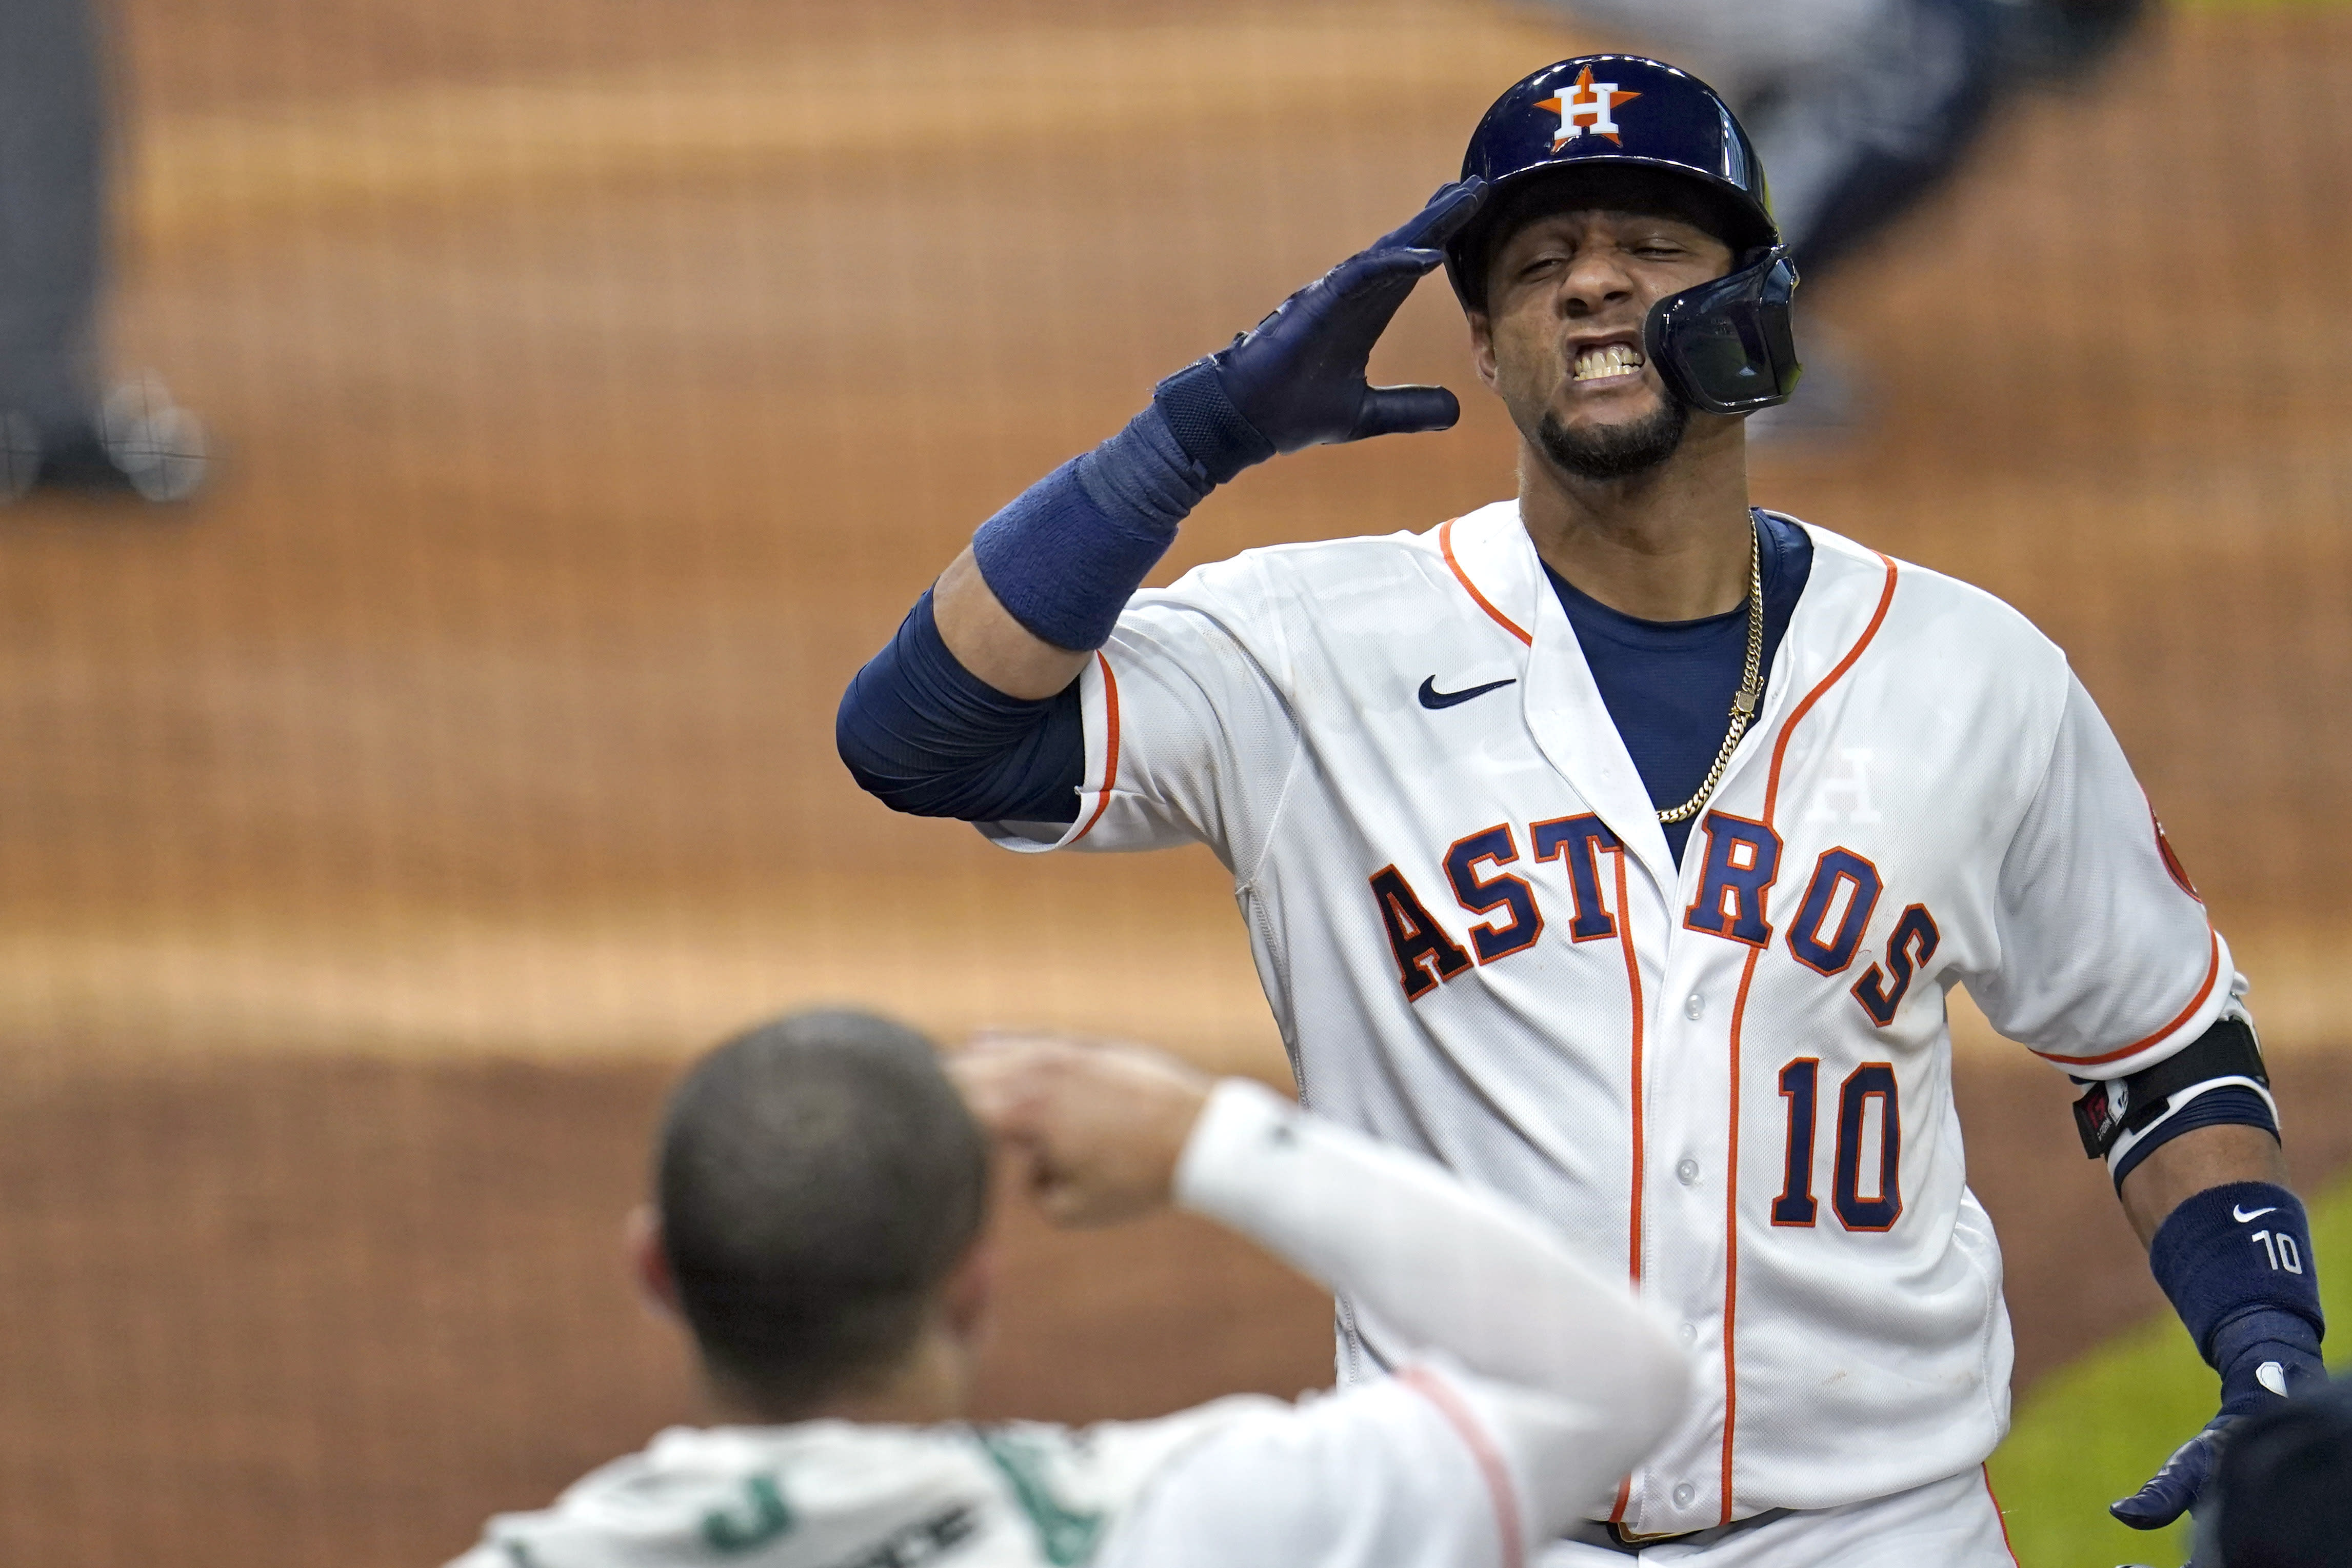 Houston Astros' Yuli Gurriel (10) celebrates with Alex Bregman after hitting a home run against the Seattle Mariners during the fourth inning of a baseball game Saturday, July 25, 2020, in Houston. (AP Photo/David J. Phillip)